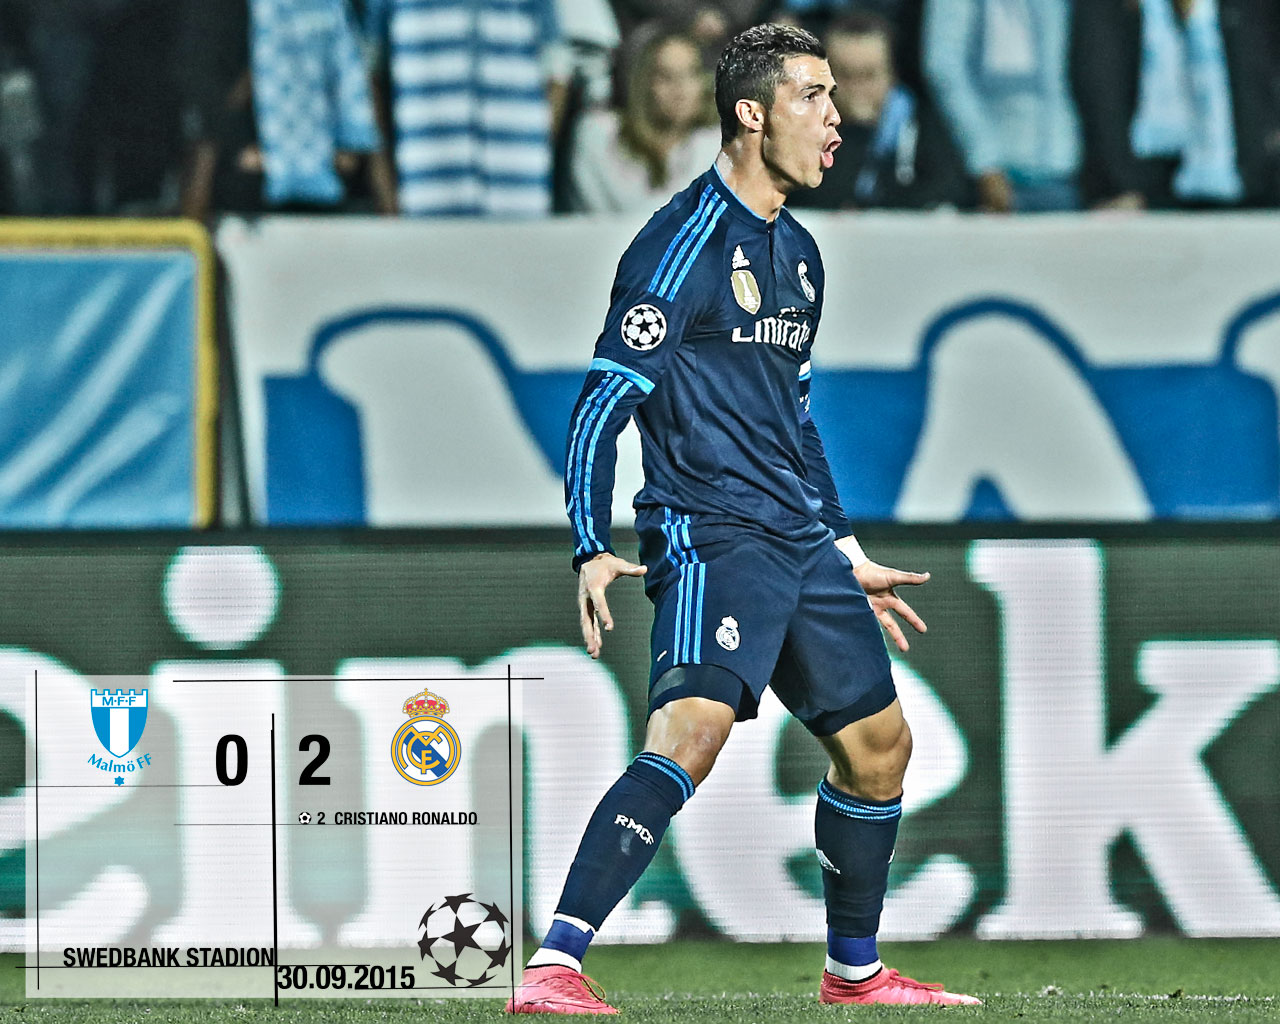 Real Madrid vs Malmo